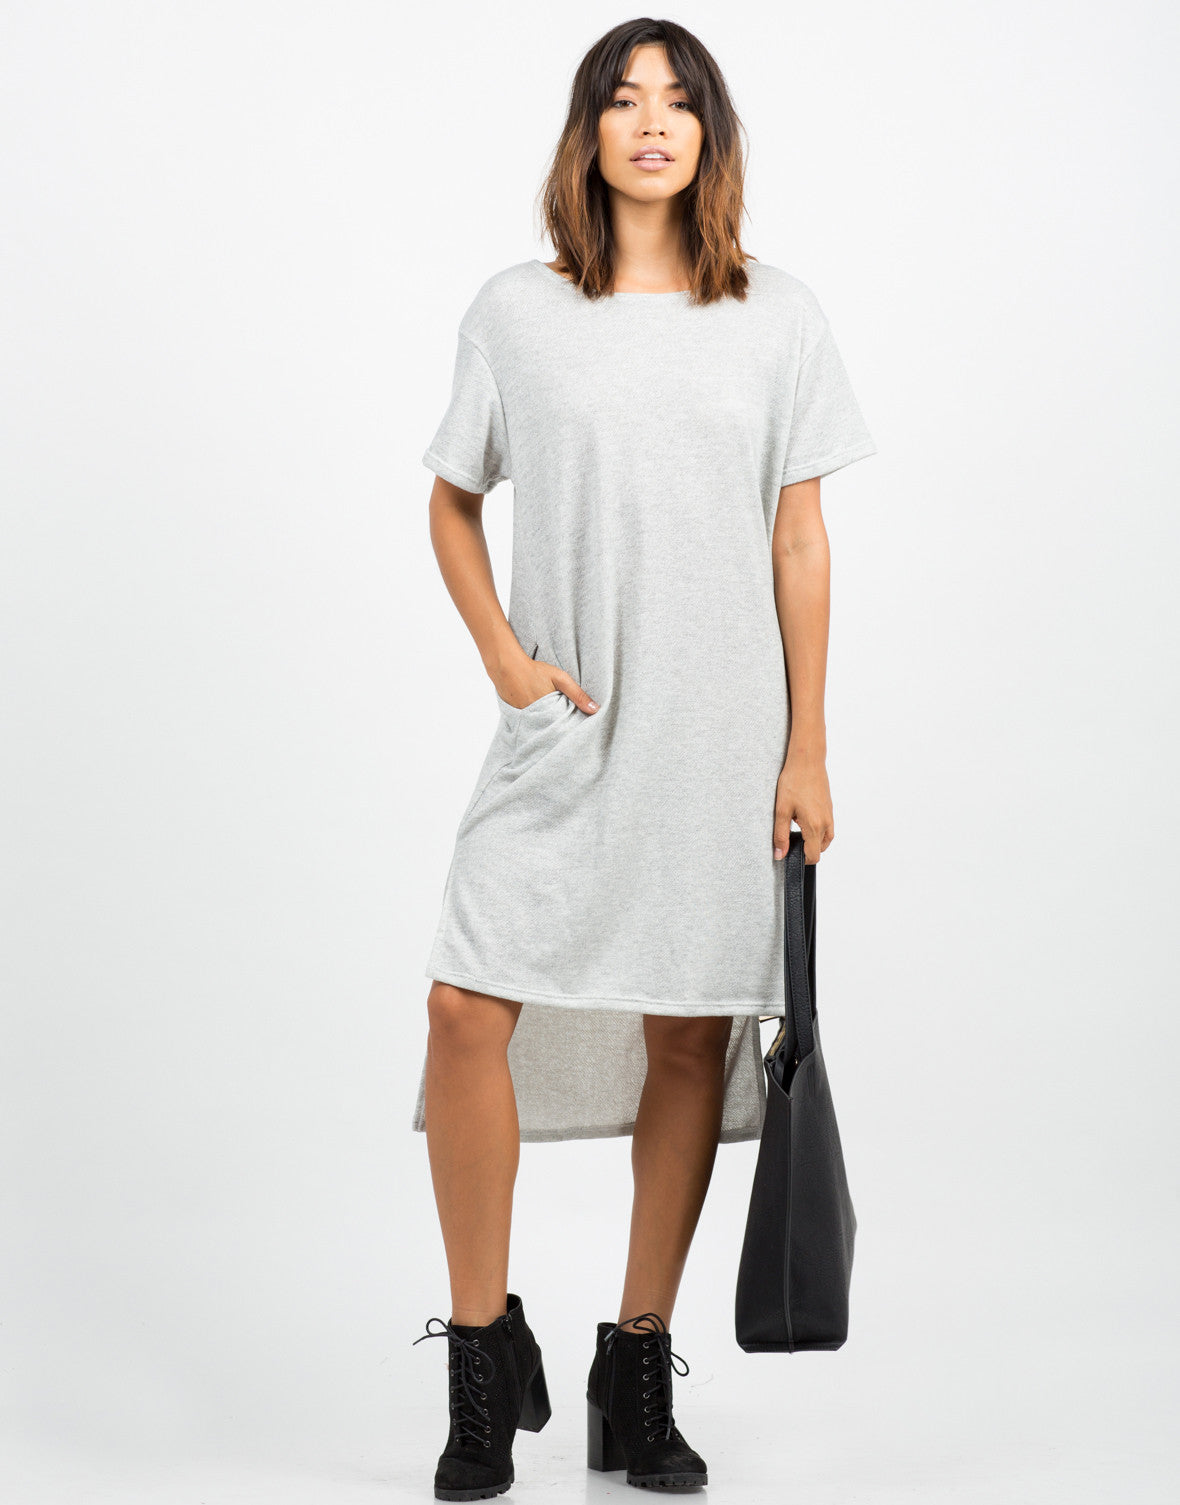 Front View of Hi-Low Sweater Dress